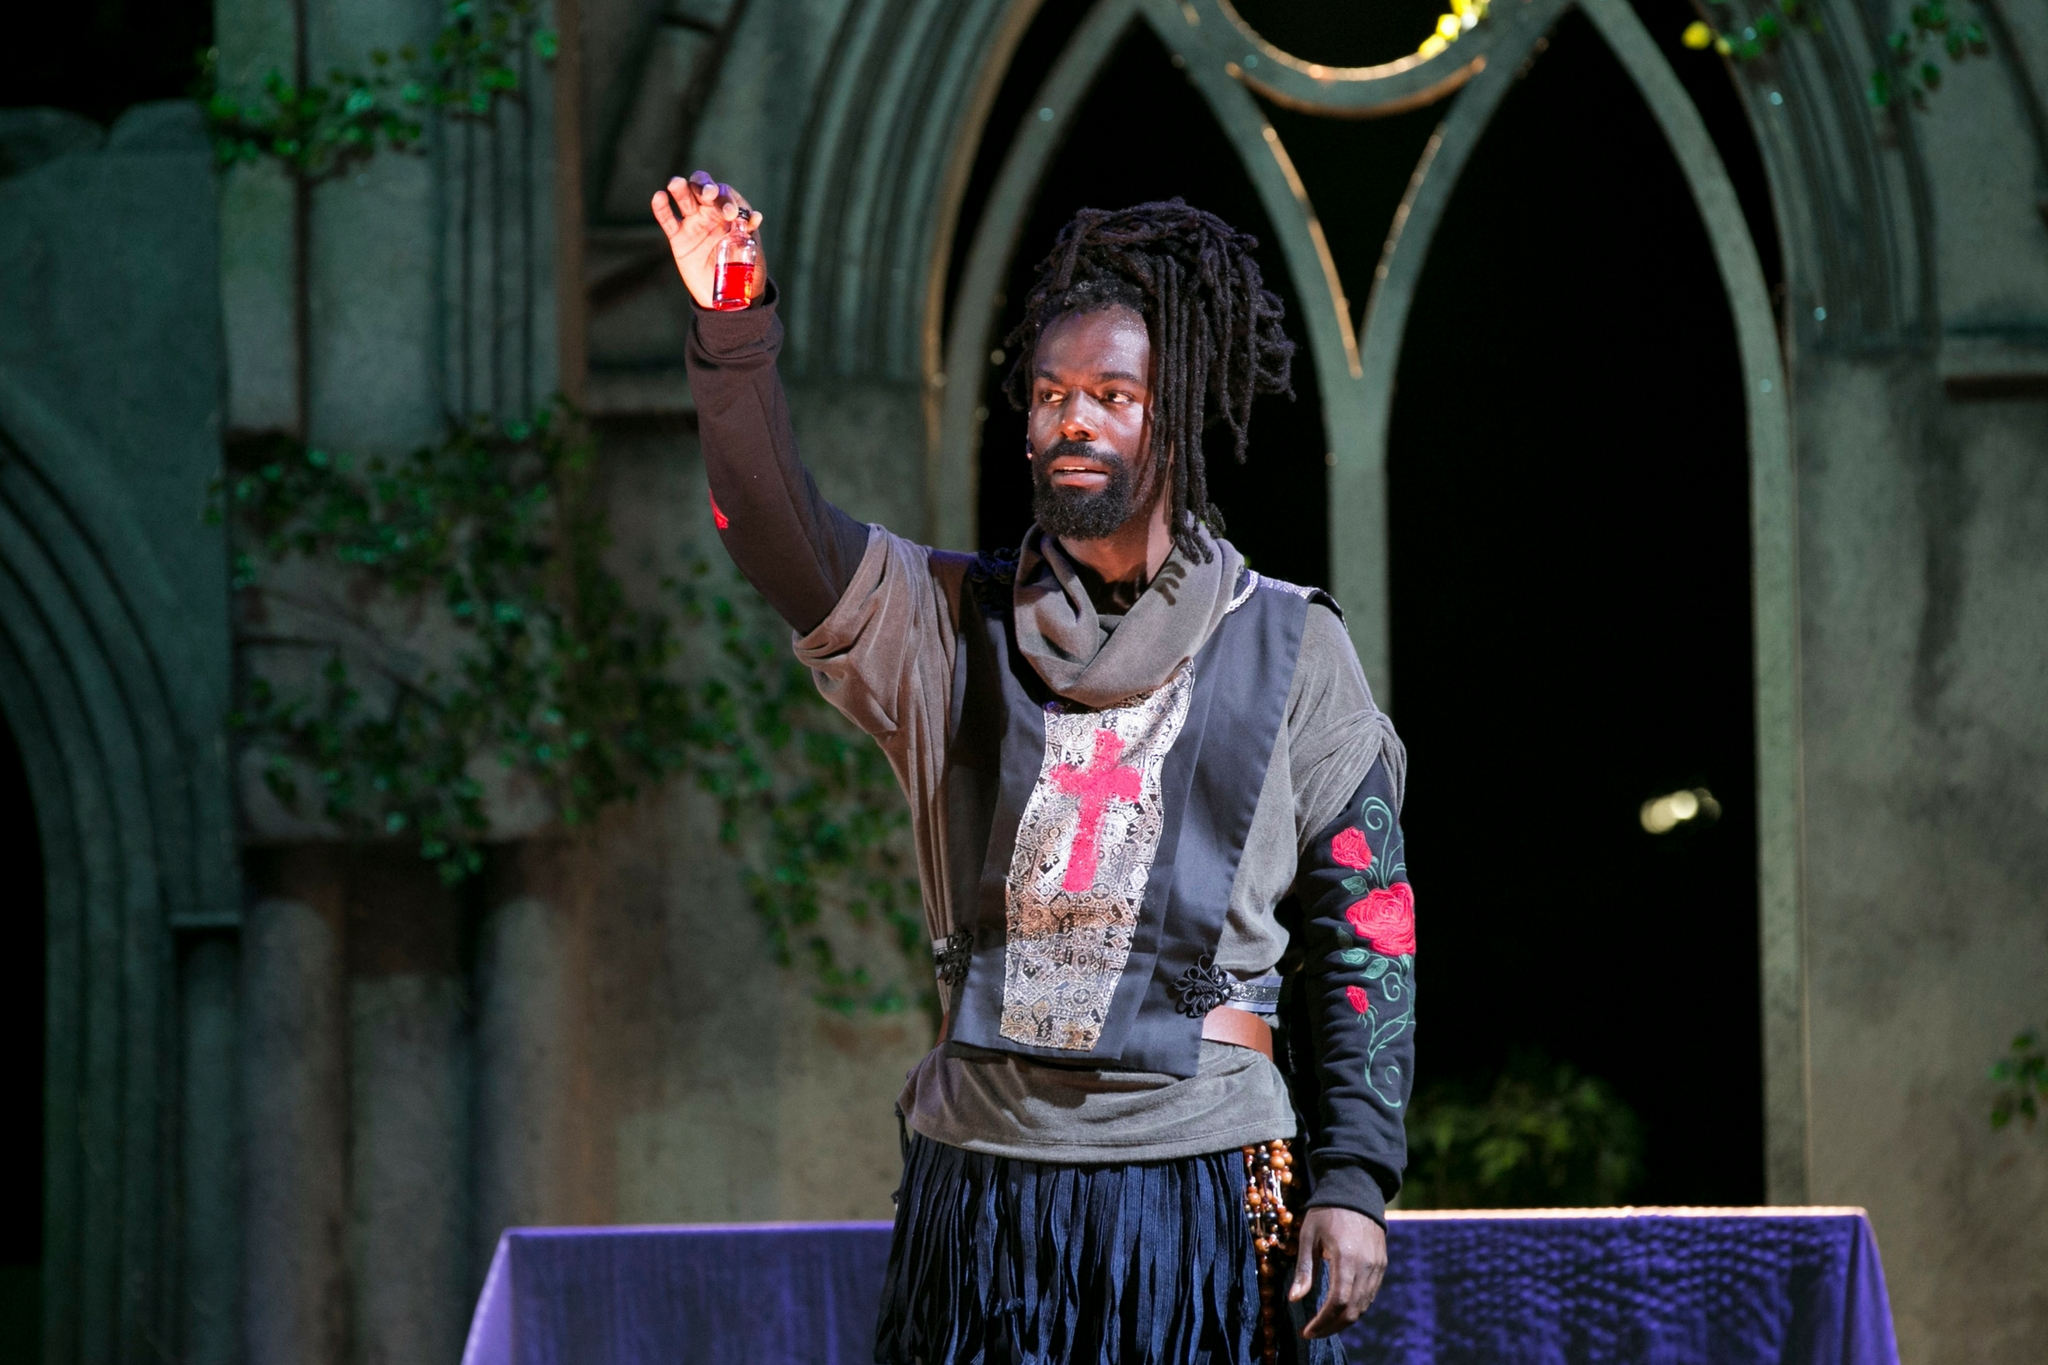 Equiano Mosieri (Friar Laurence) in Romeo & Juliet, Shakespeare on the Common 2017-Photo by Evgenia Eliseeva